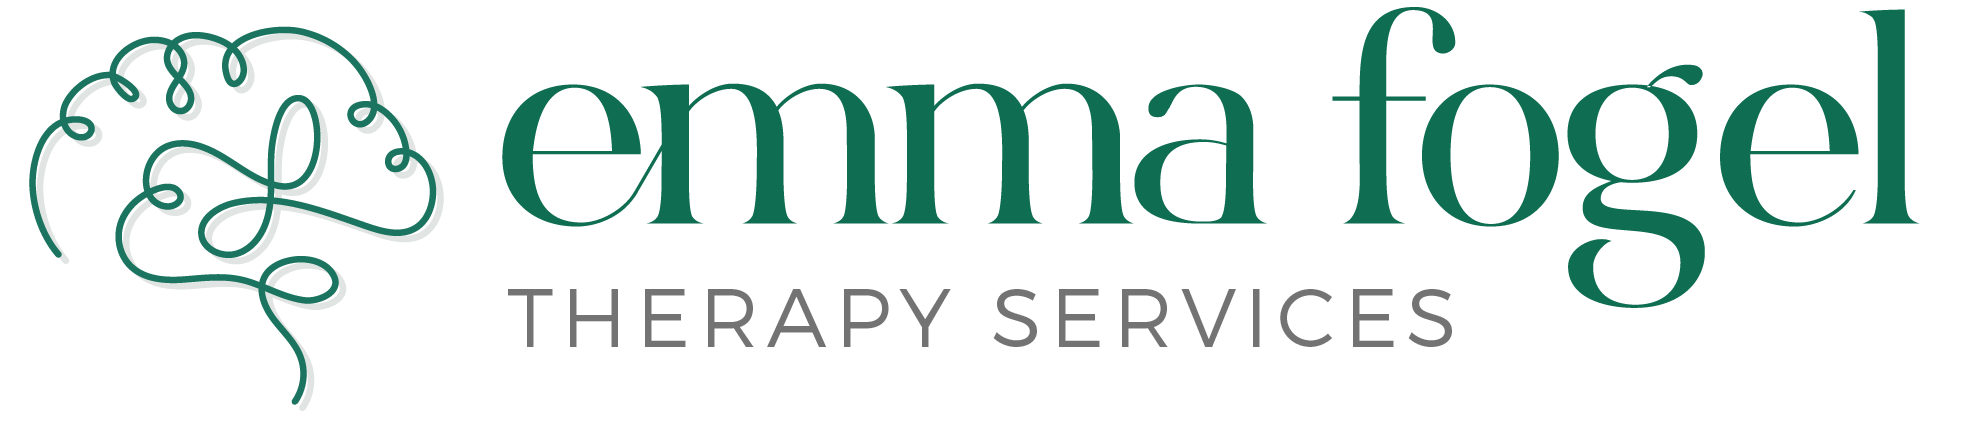 Emma Fogel Therapy Services